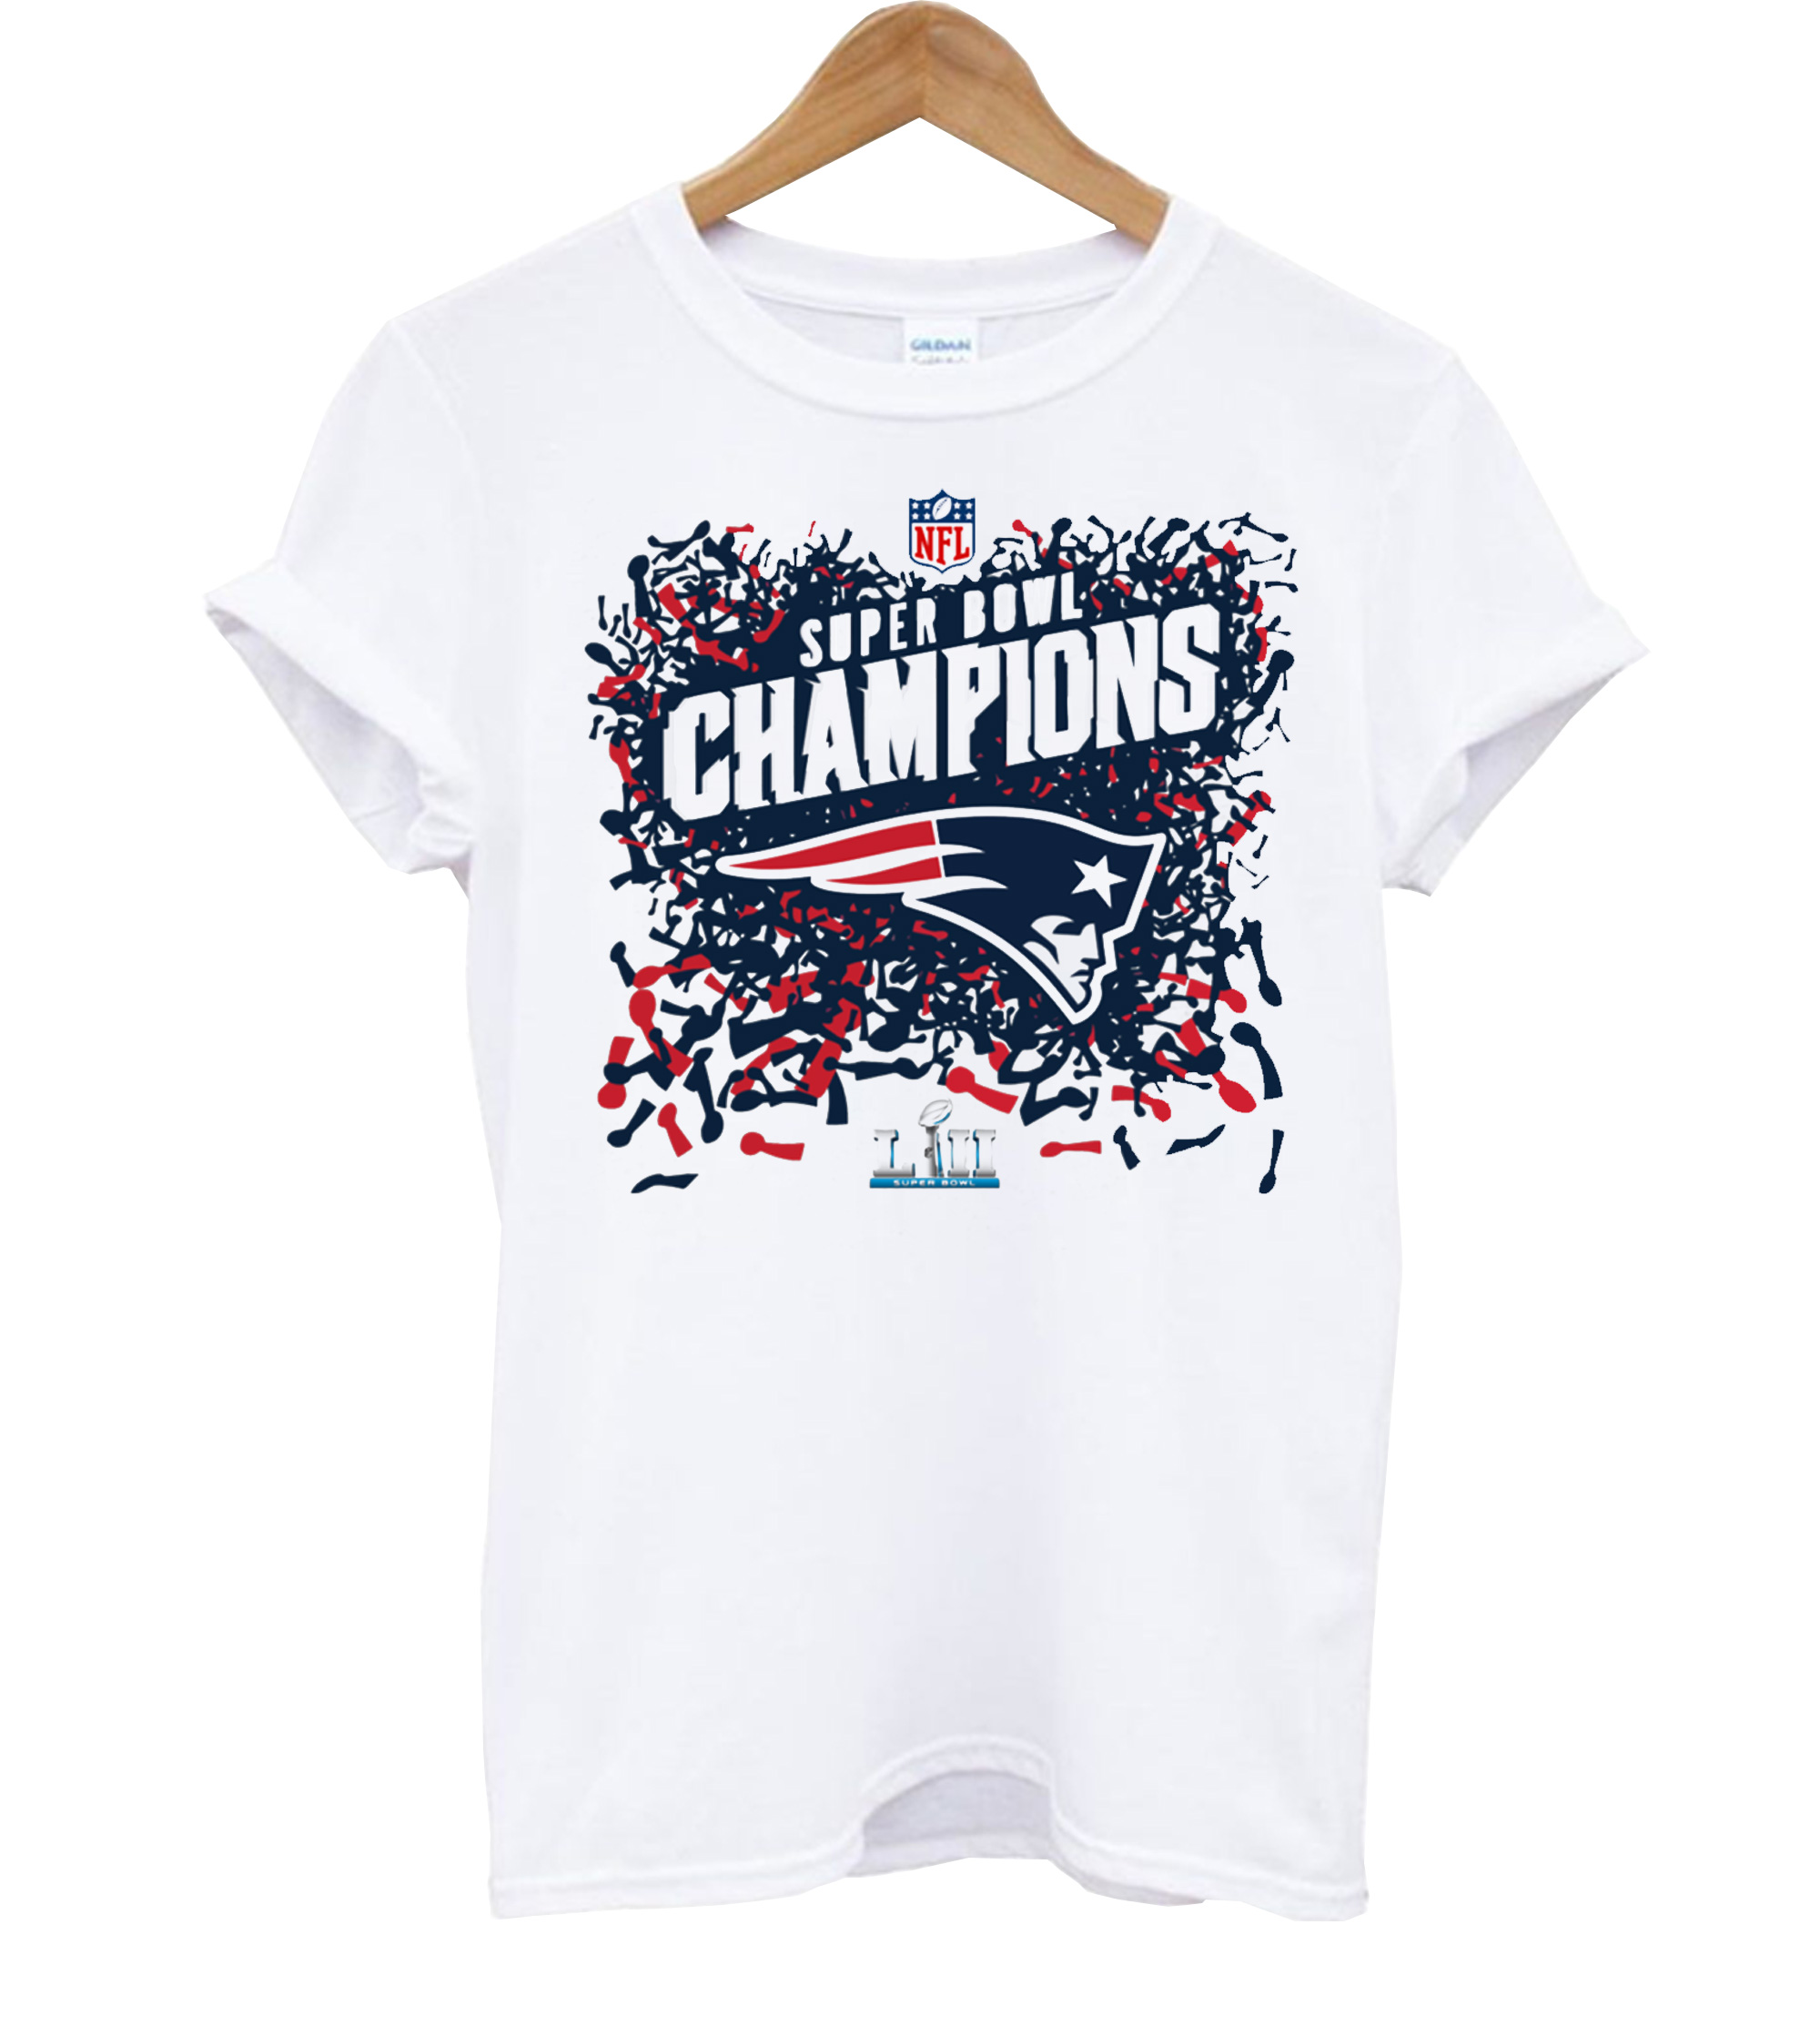 Youth Super Bowl LIII Champions T Shirt